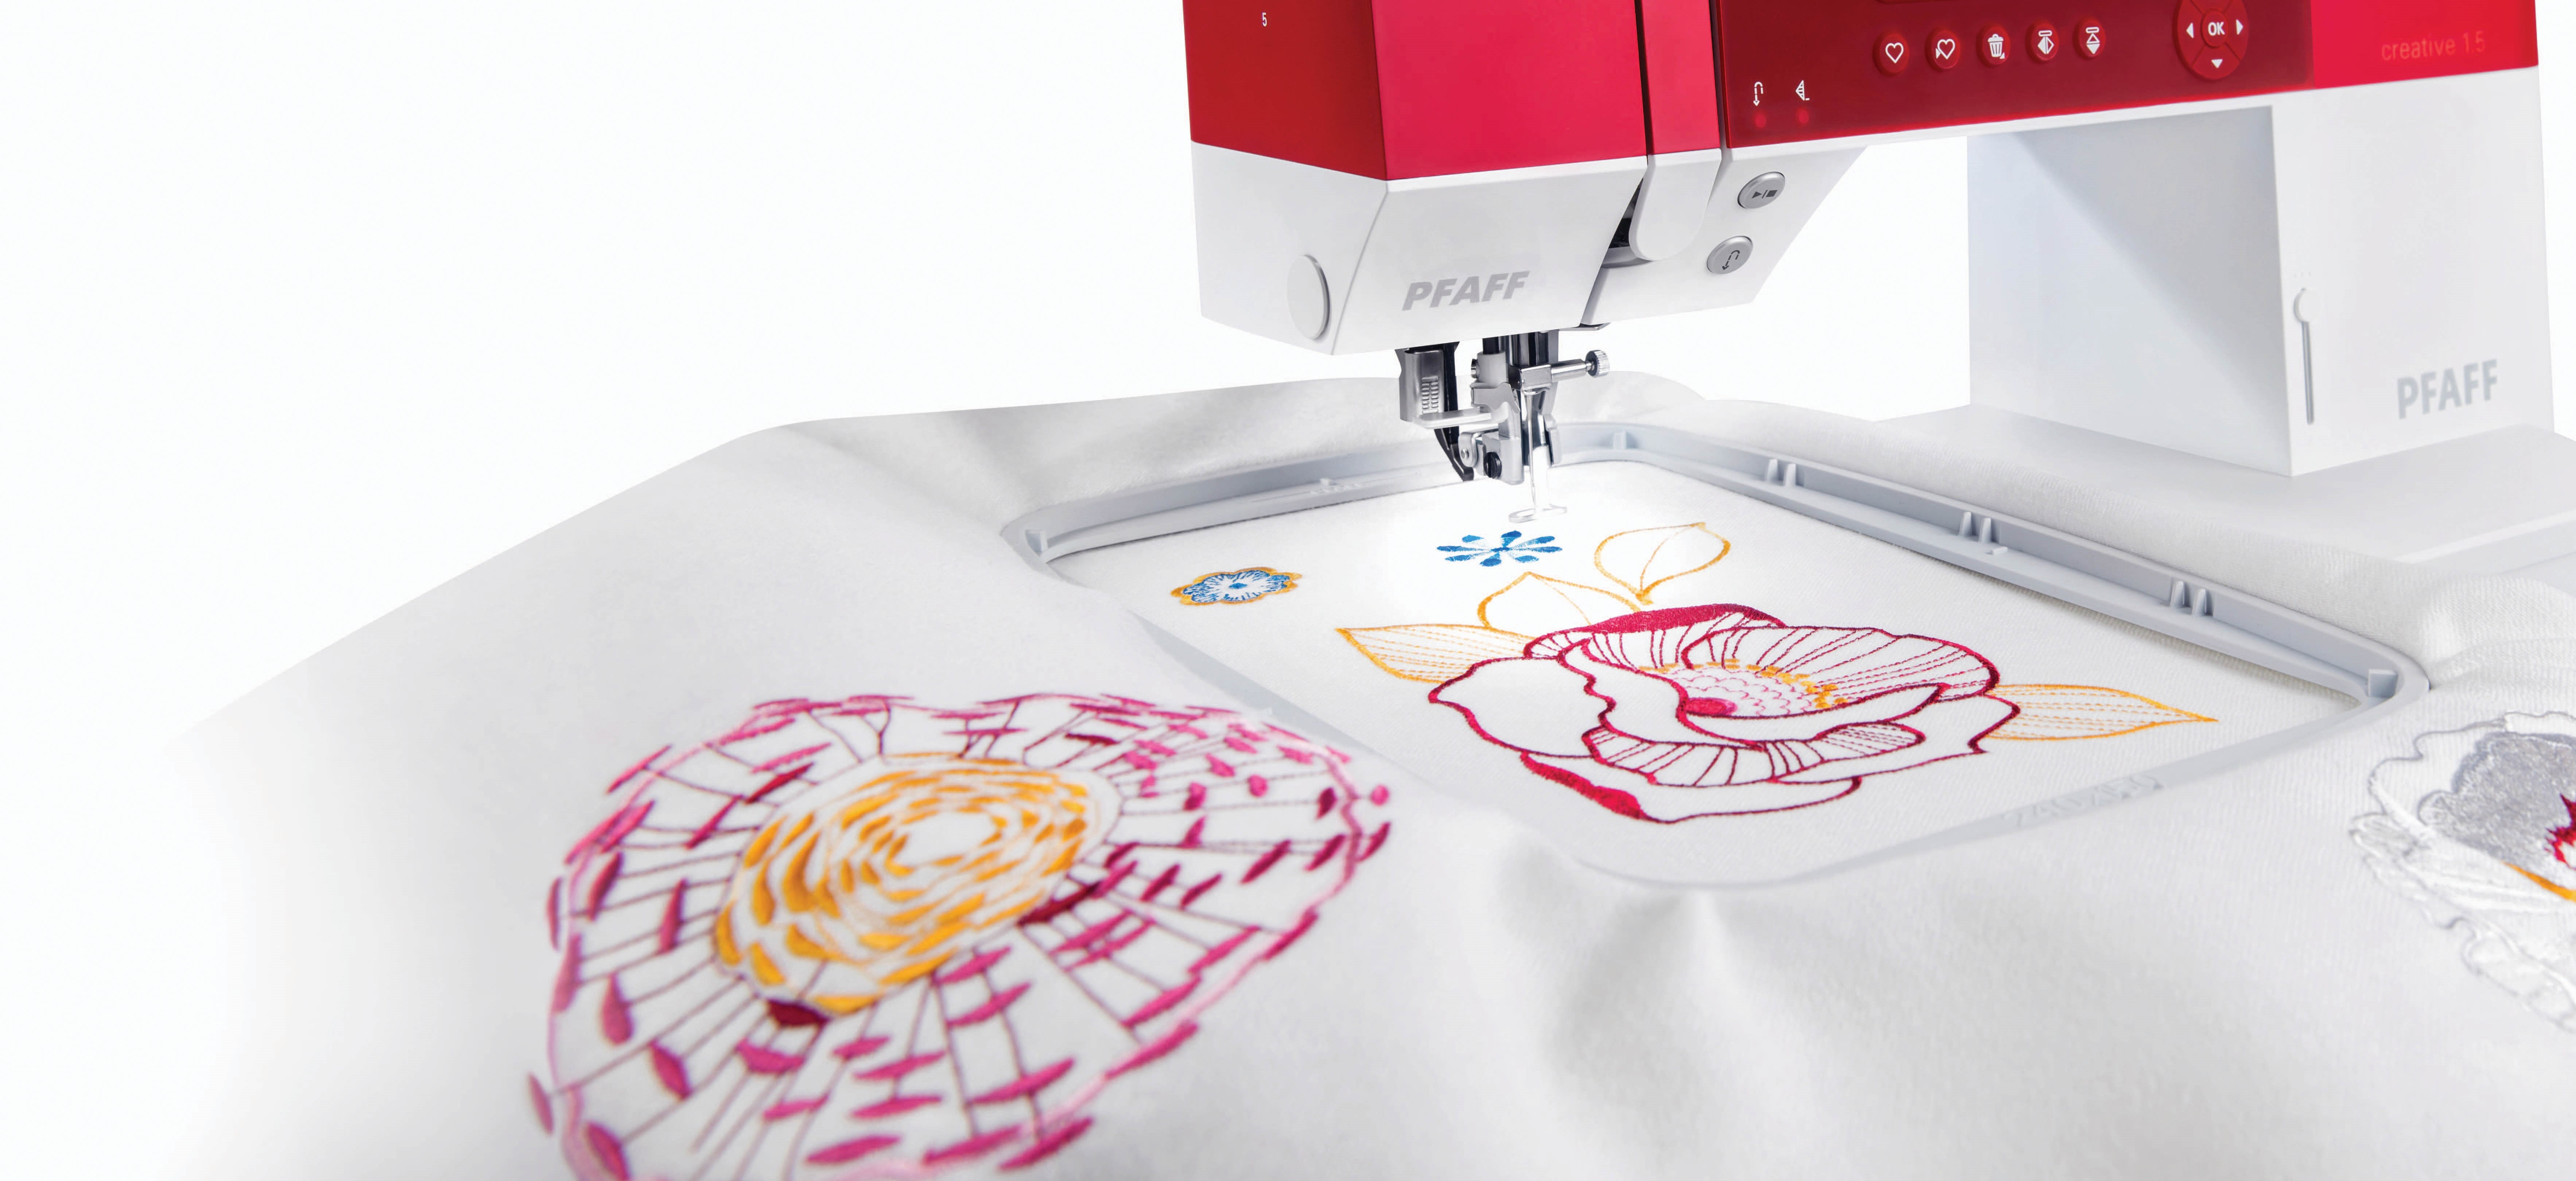 Machine and Embroideries